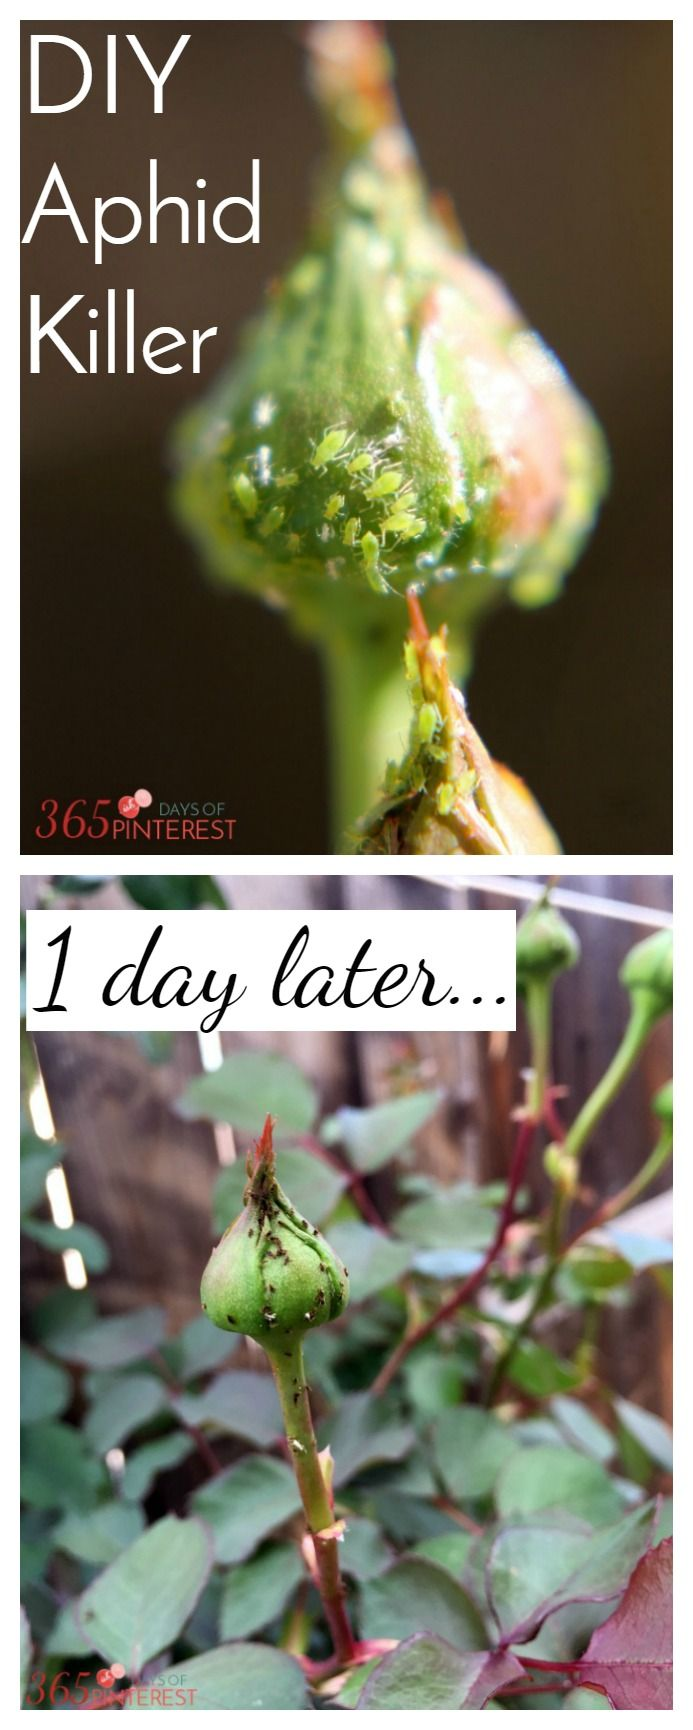 Ladybugs are nature's aphid killers, but when you have a big job like this one, you need an easy DIY aphid killer spray! This works in one day and keeps them off!